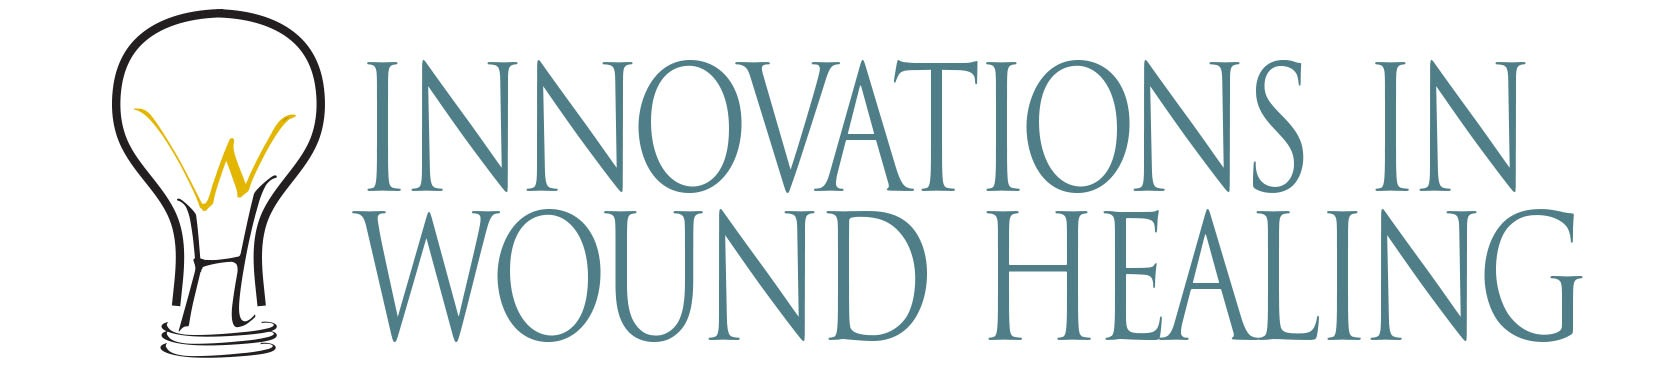 2017 INNOVATIONS IN WOUND HEALING